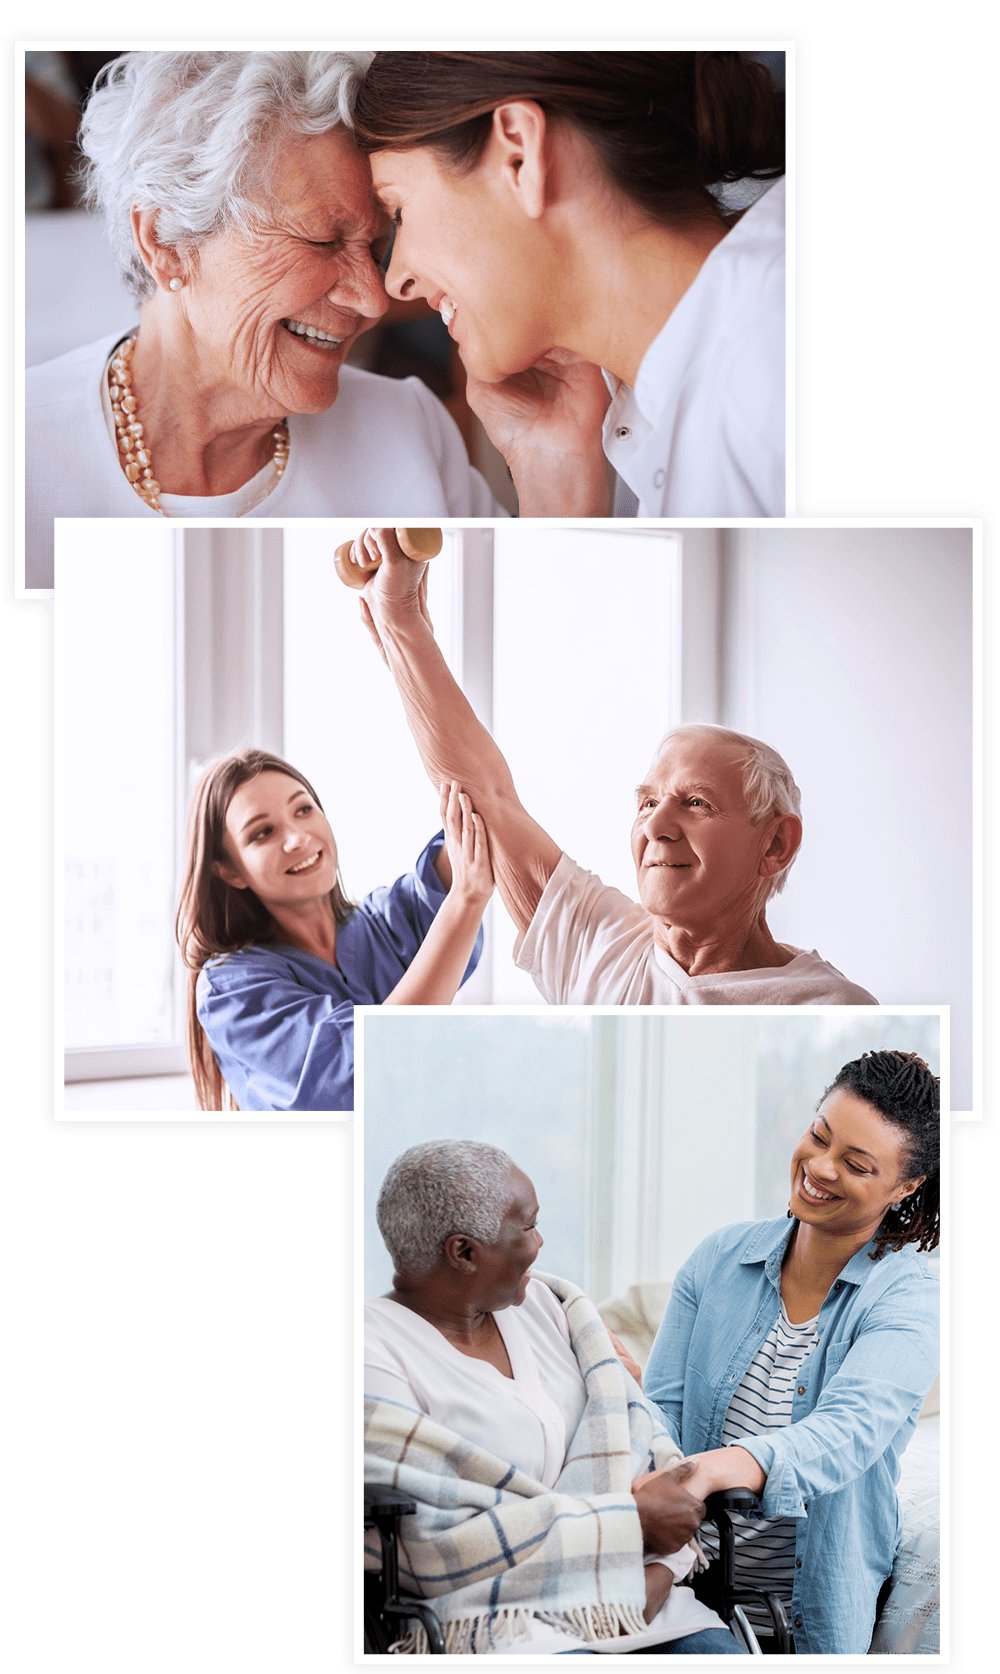 At Clearwater at South Bay we offer a variety of Senior Lifestyle options in Torrance, California